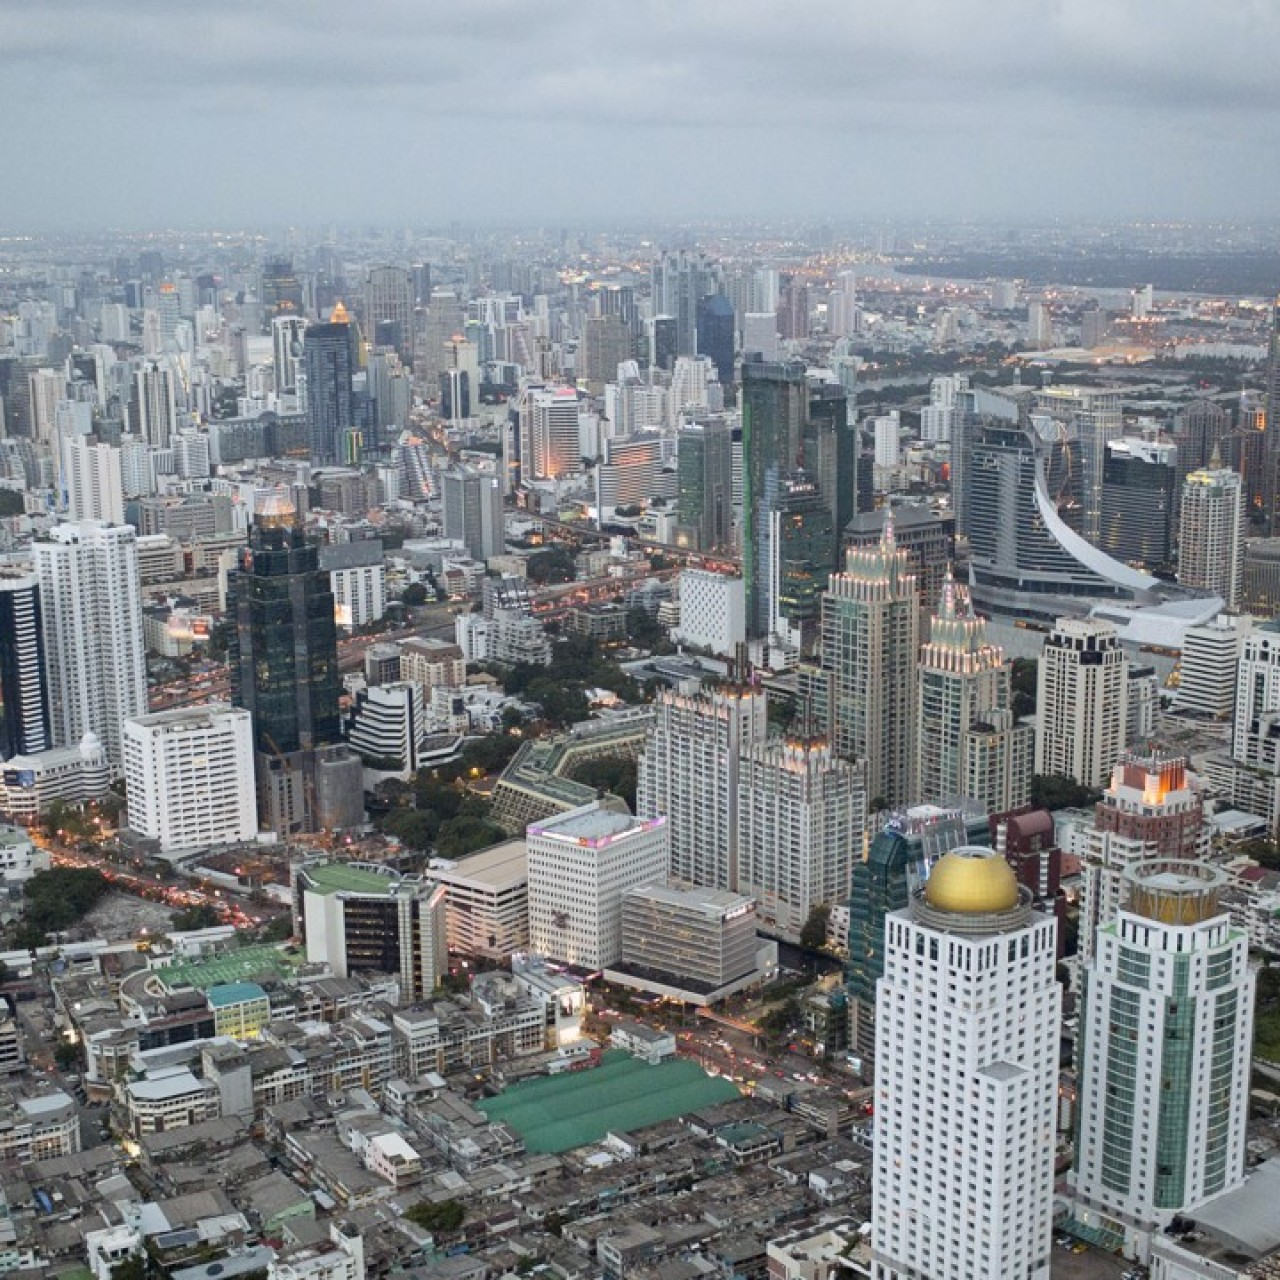 Thailand lags in fintech development in Asia | South China Morning Post